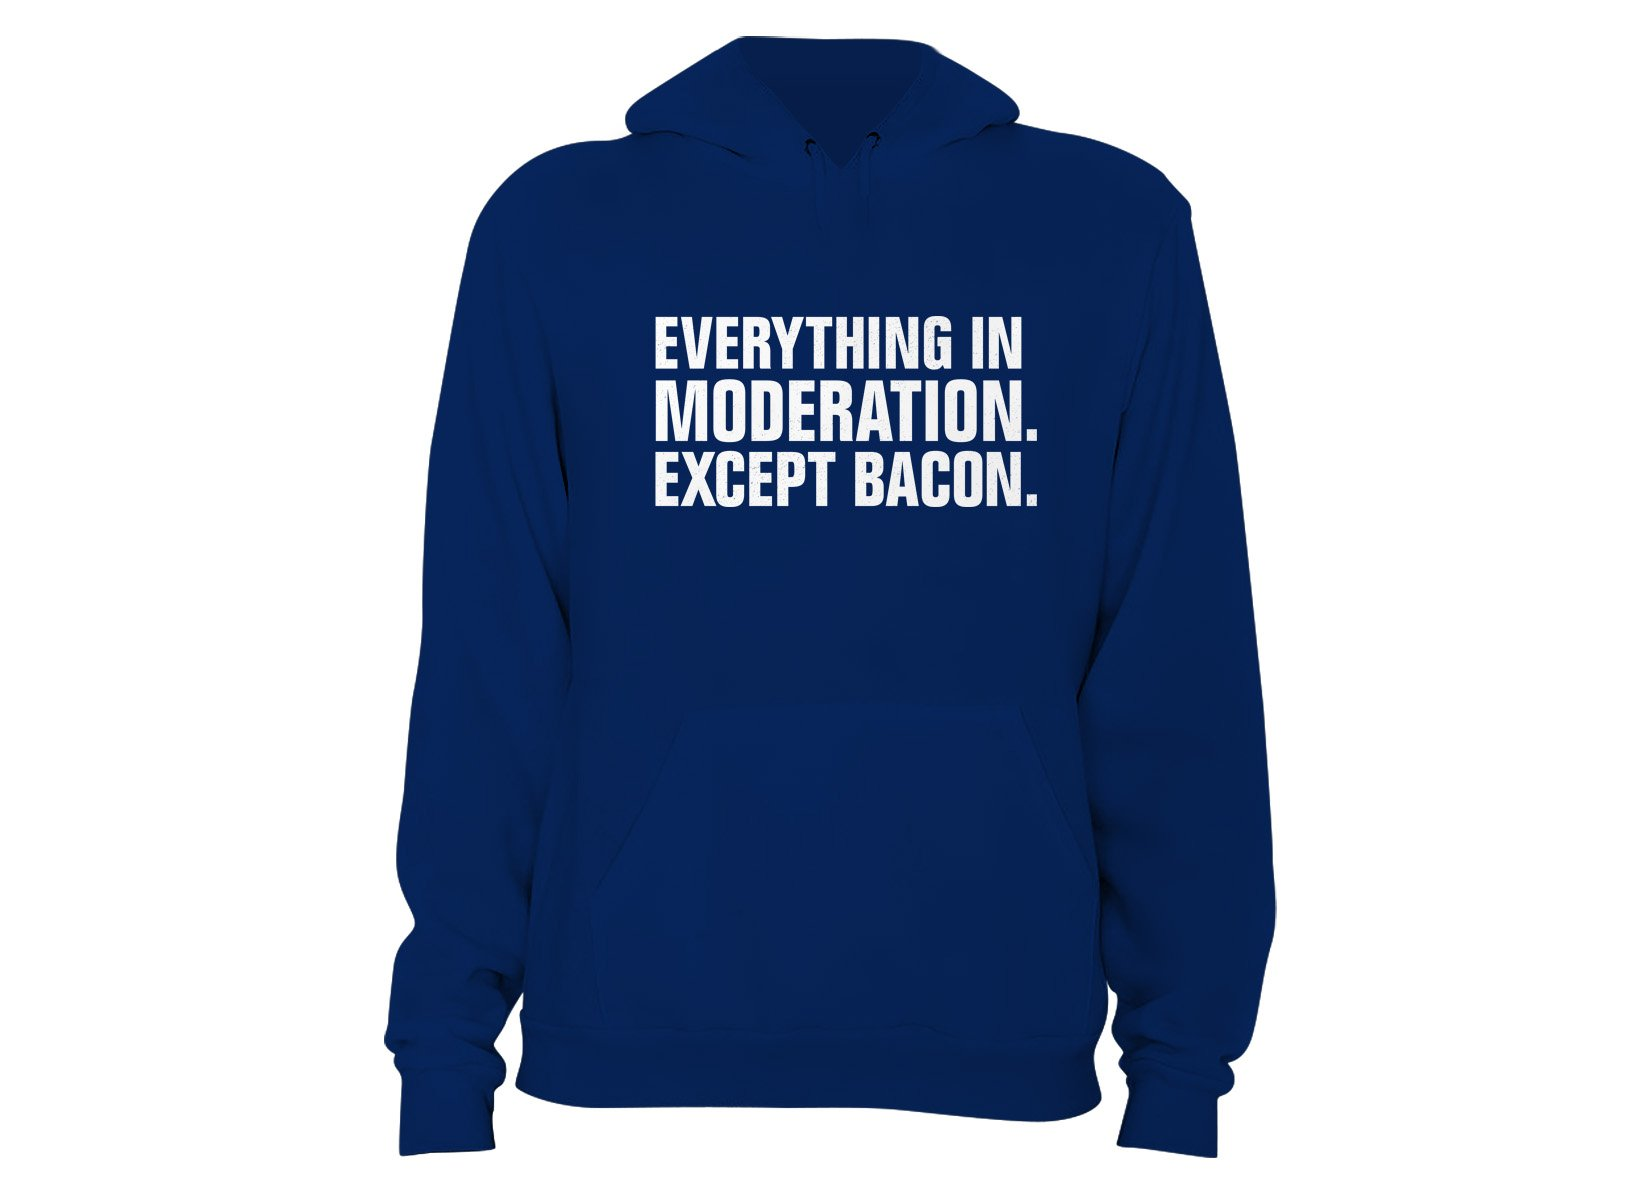 Everything In Moderation. Except Bacon. on Hoodie